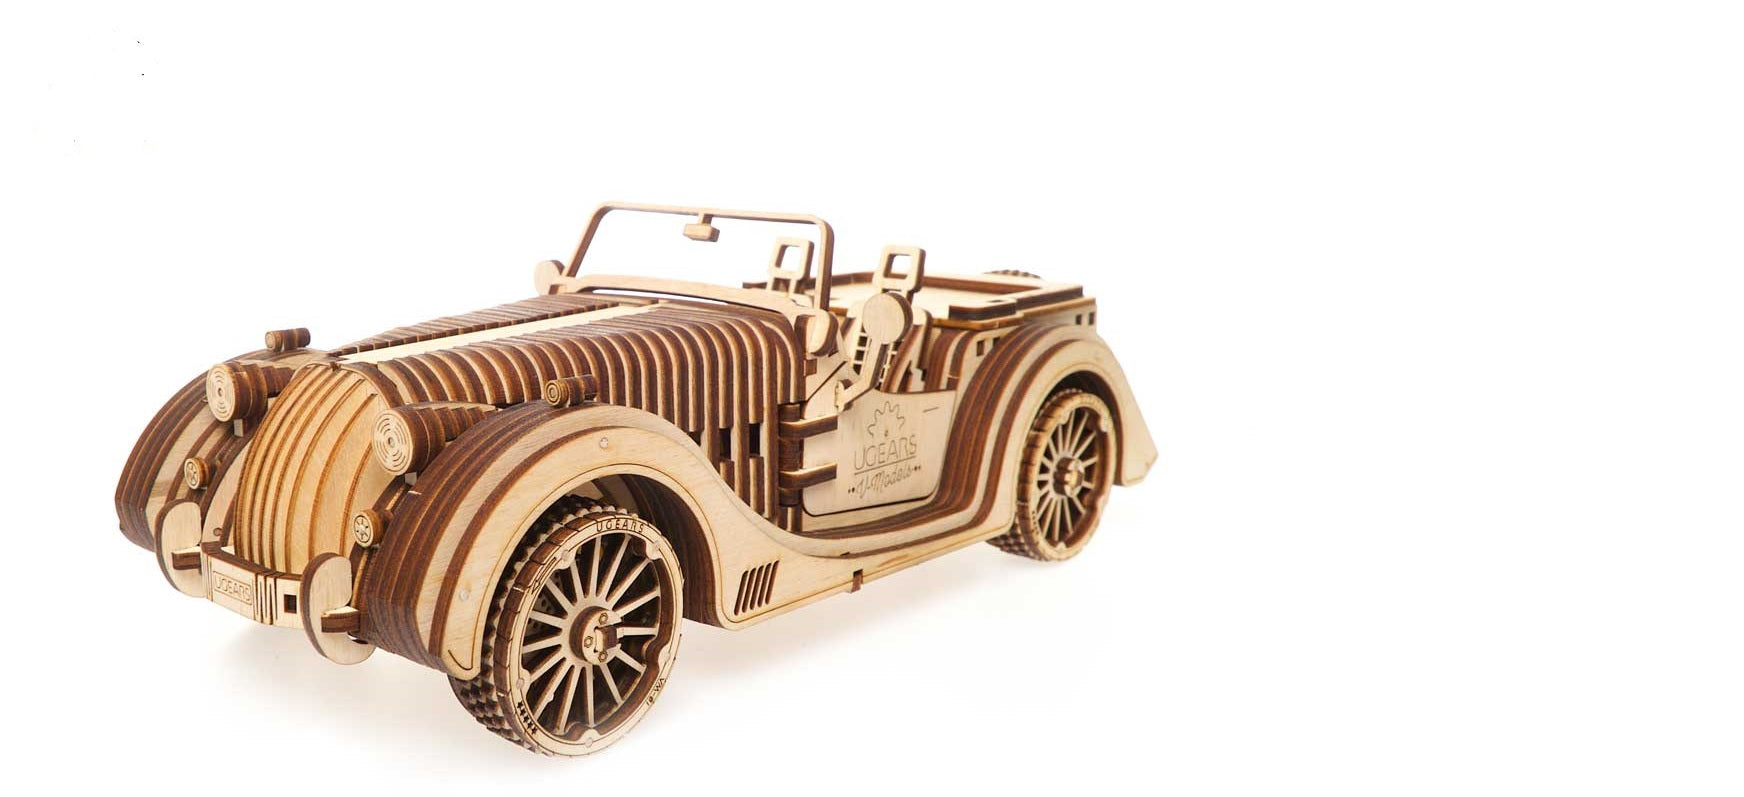 Ugears Roadster VM-01Model Kit